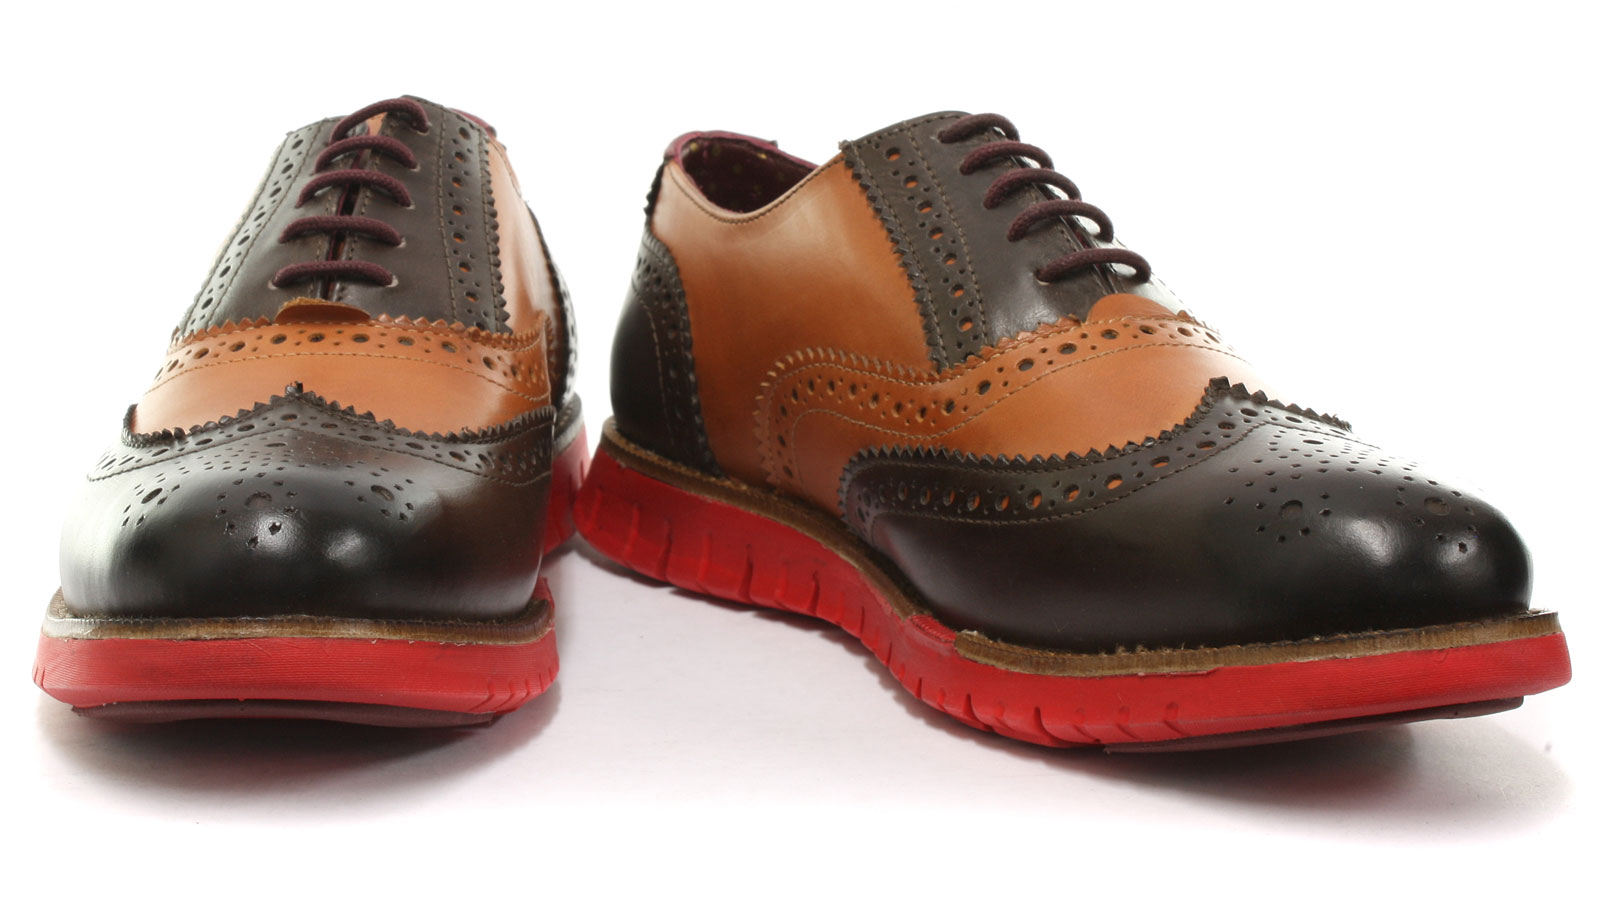 London Brogues Gatz Oxford Mens Oxford/Brogue Shoes ALL SIZES AND COLOURS